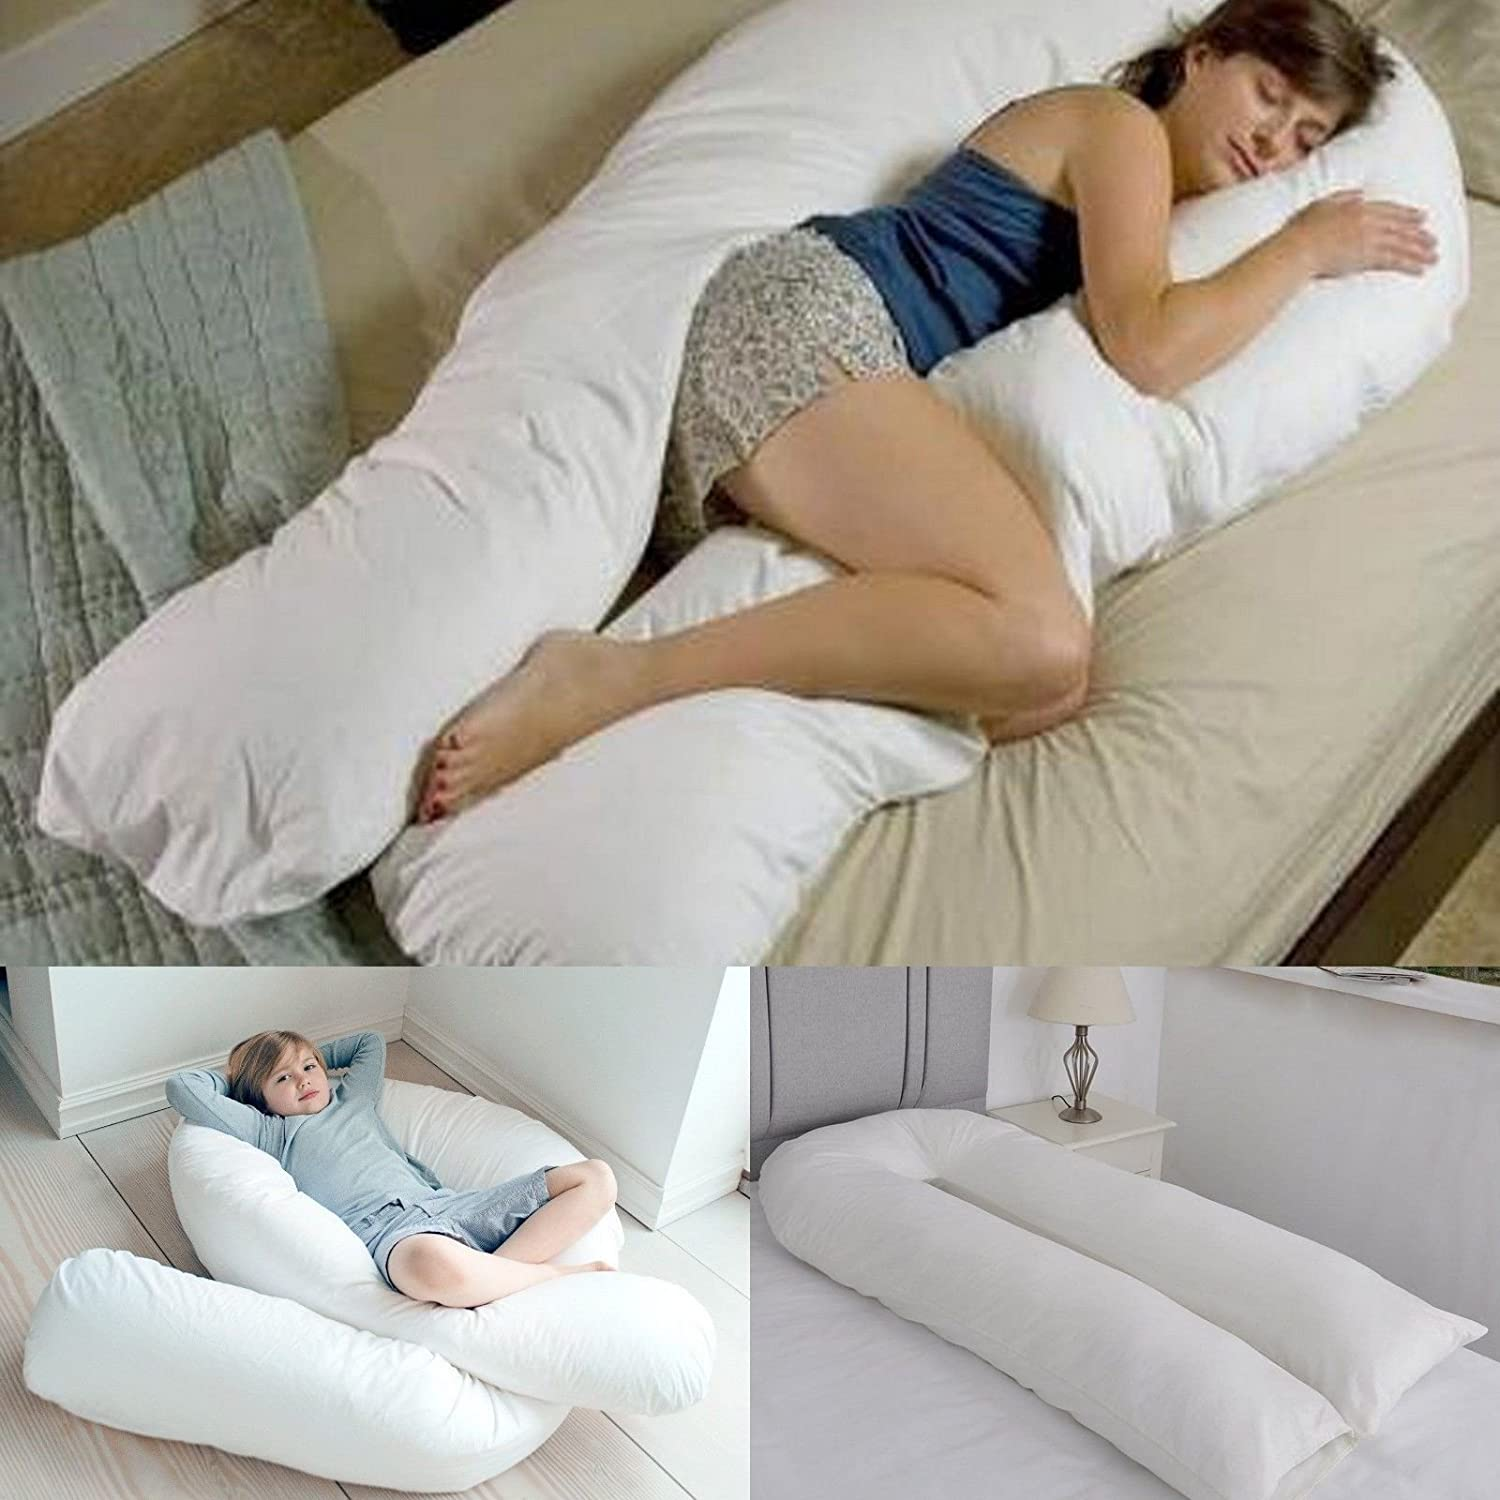 Bedding Home 12 & 9 FT Long C_U Shaped Curled Full Body Large Cuddly & Maternity Pregnancy Support Pillow (9 Foot Pillow)